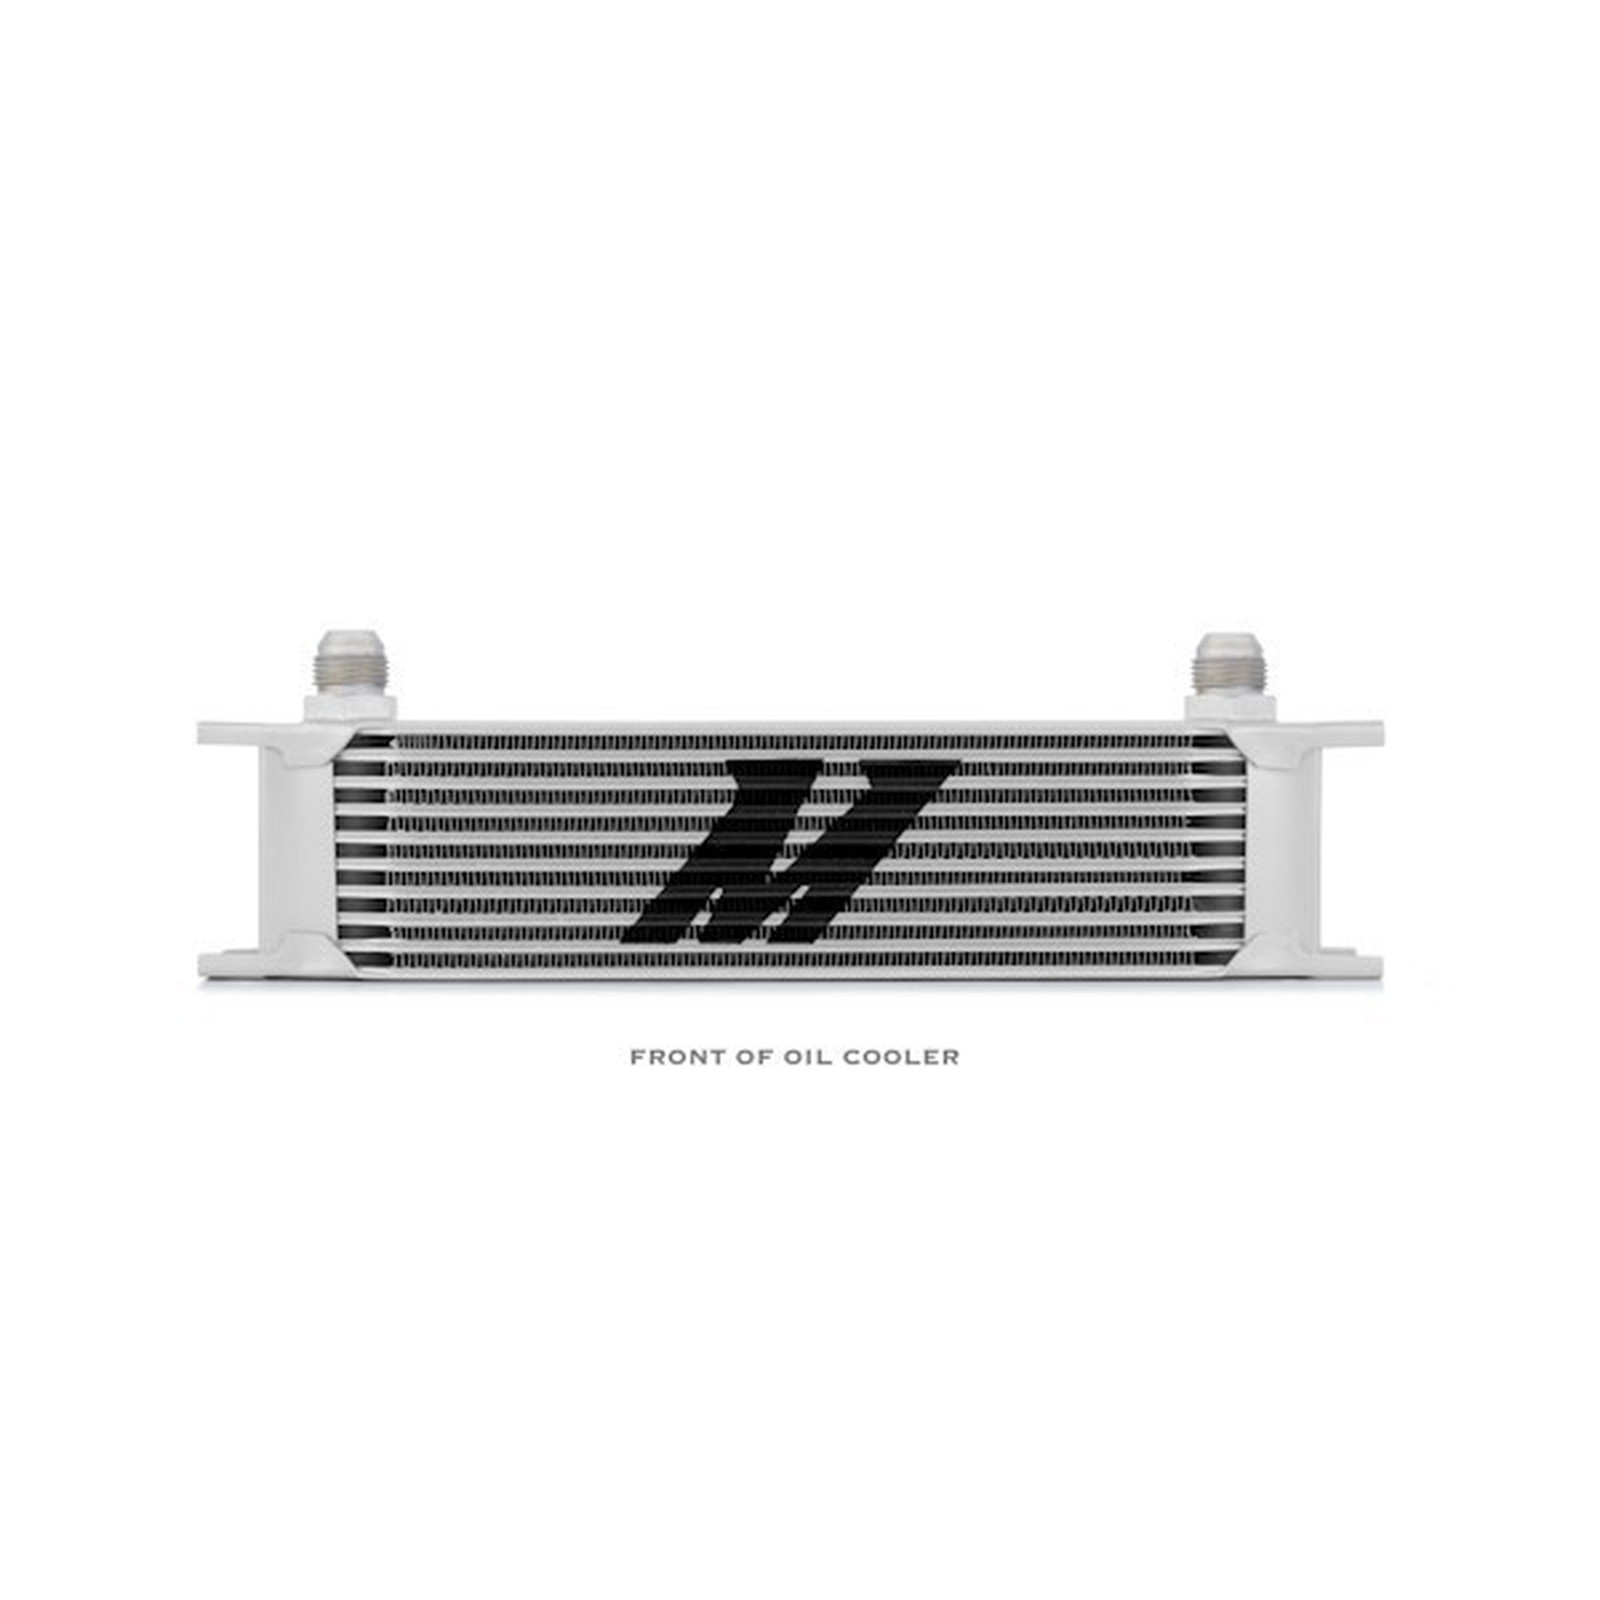 Silver Mishimoto MMOC-19 Universal 19-Row Oil Cooler